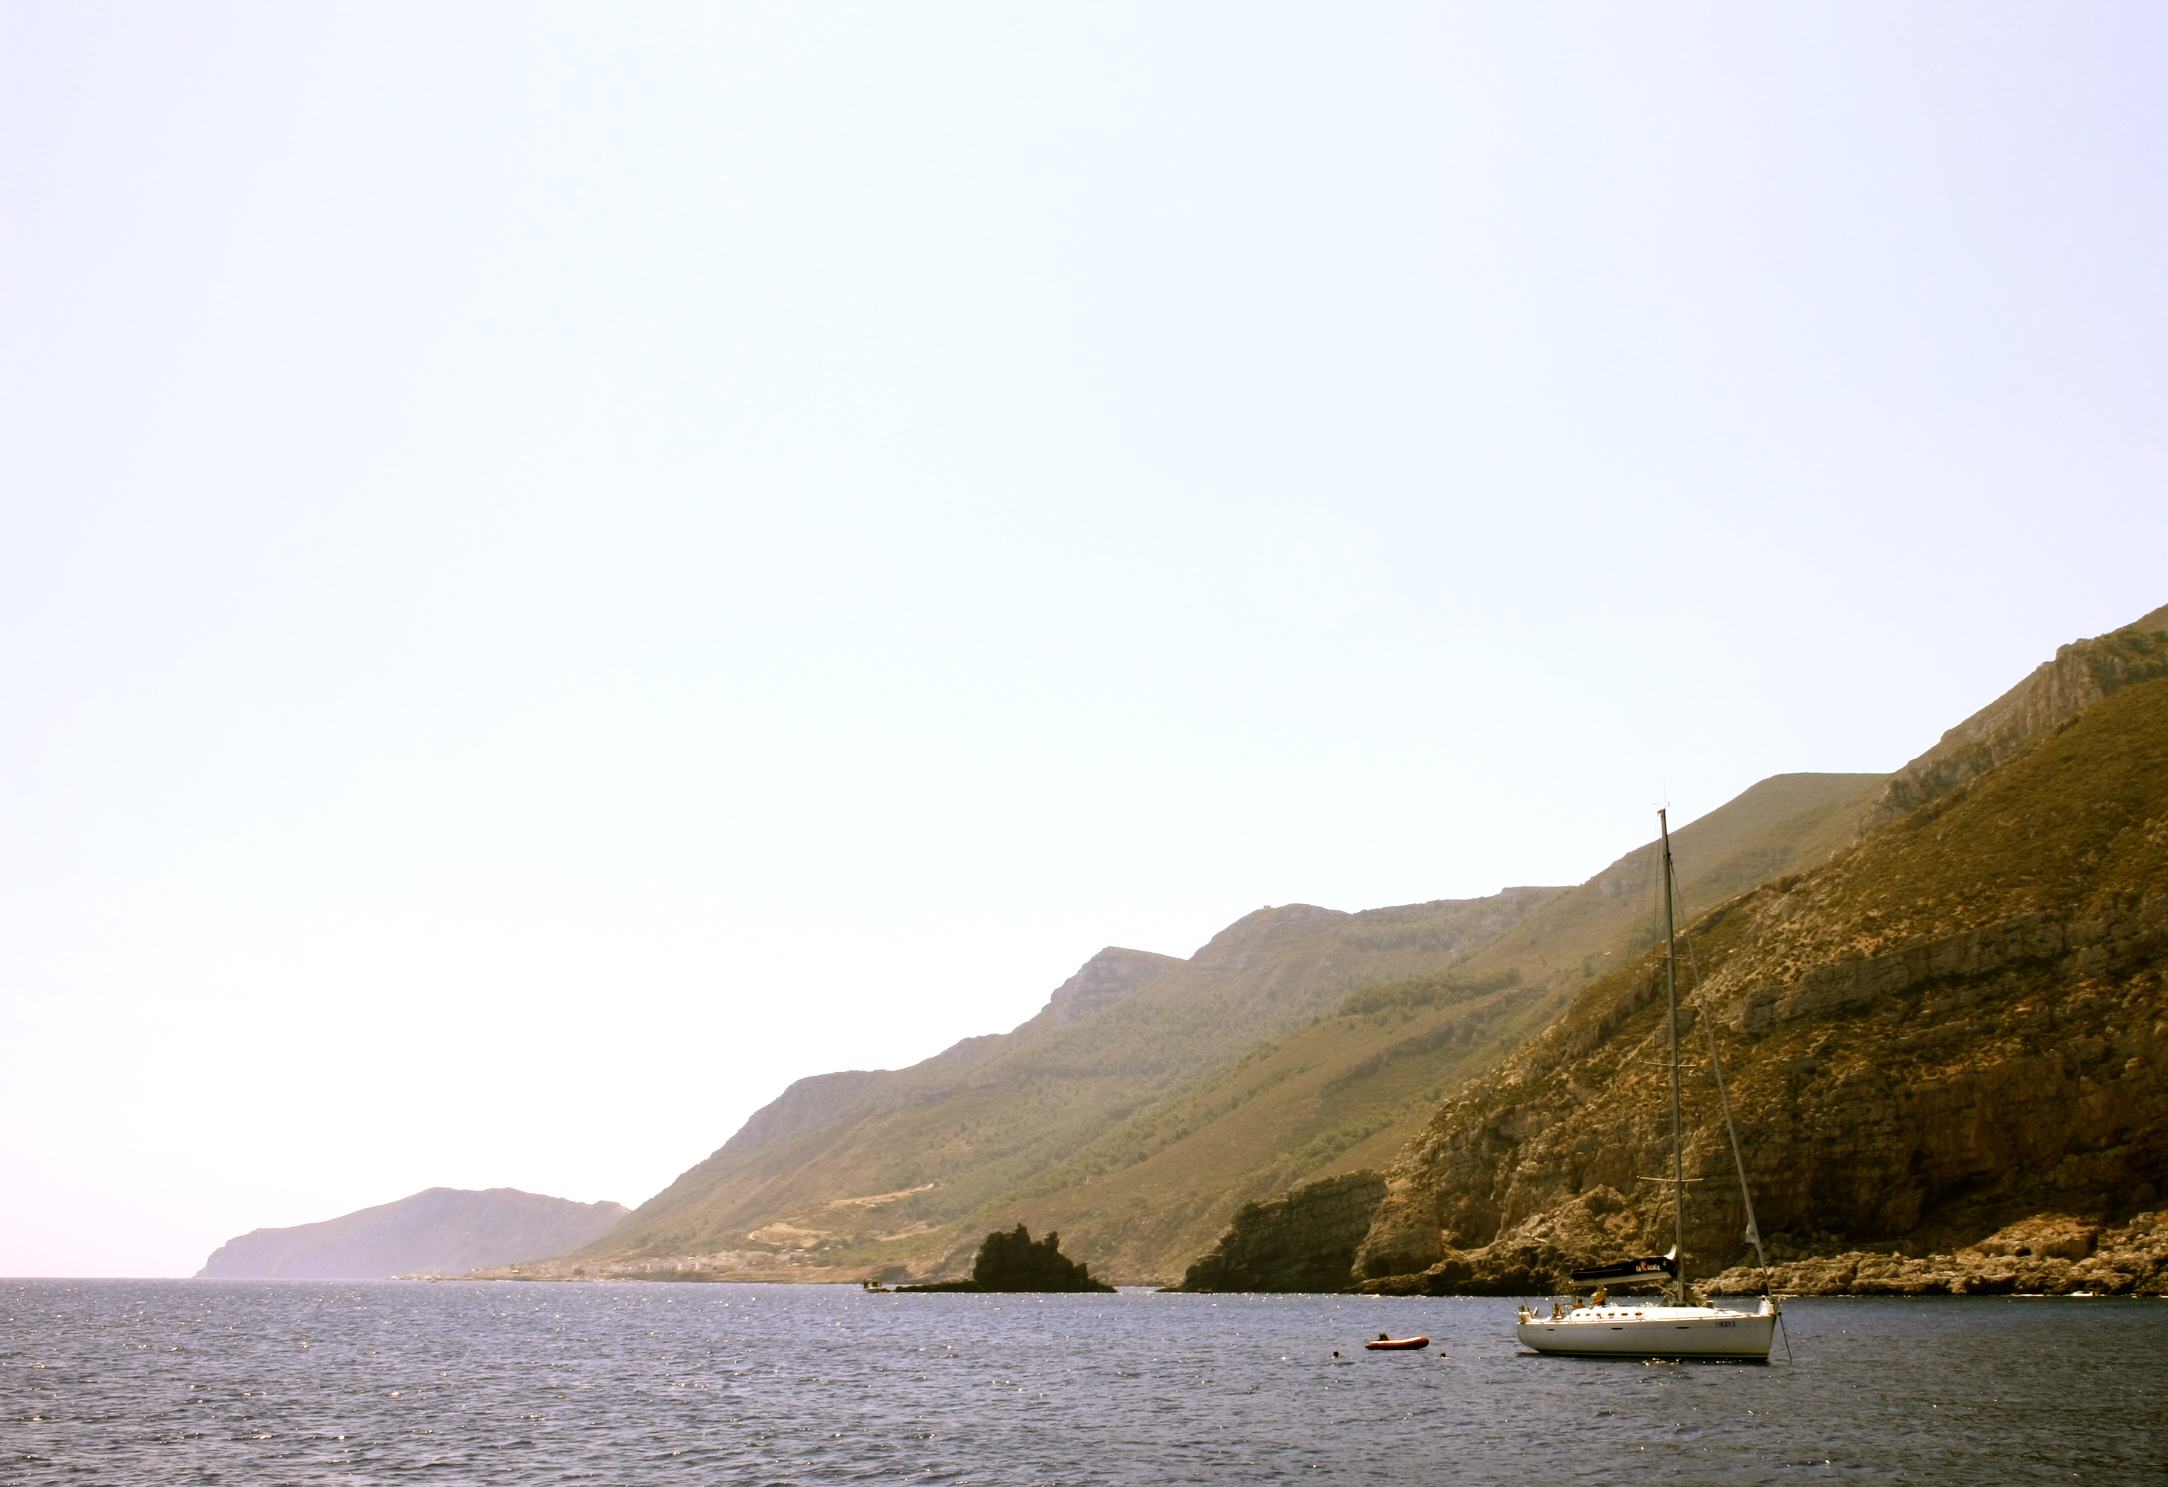 on the way to Grotta del Genovese, pic by Carlotta Cicotti